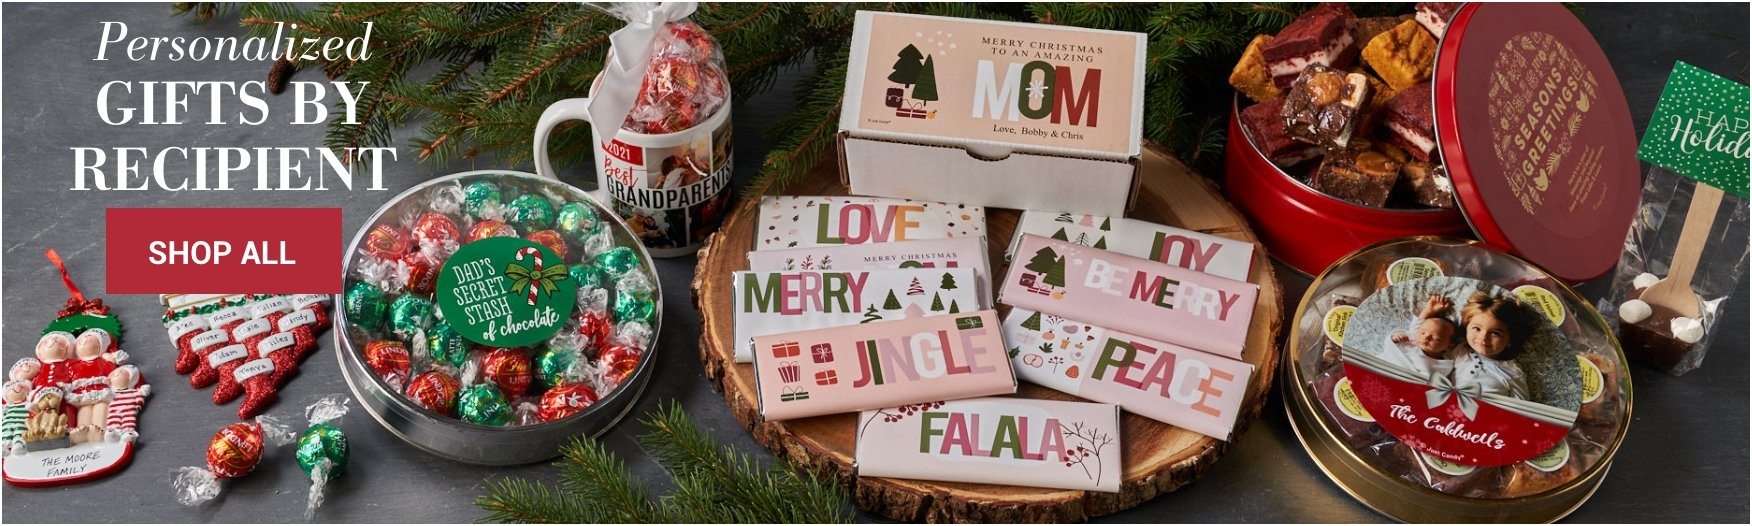 personalized holidays gifts by recipient